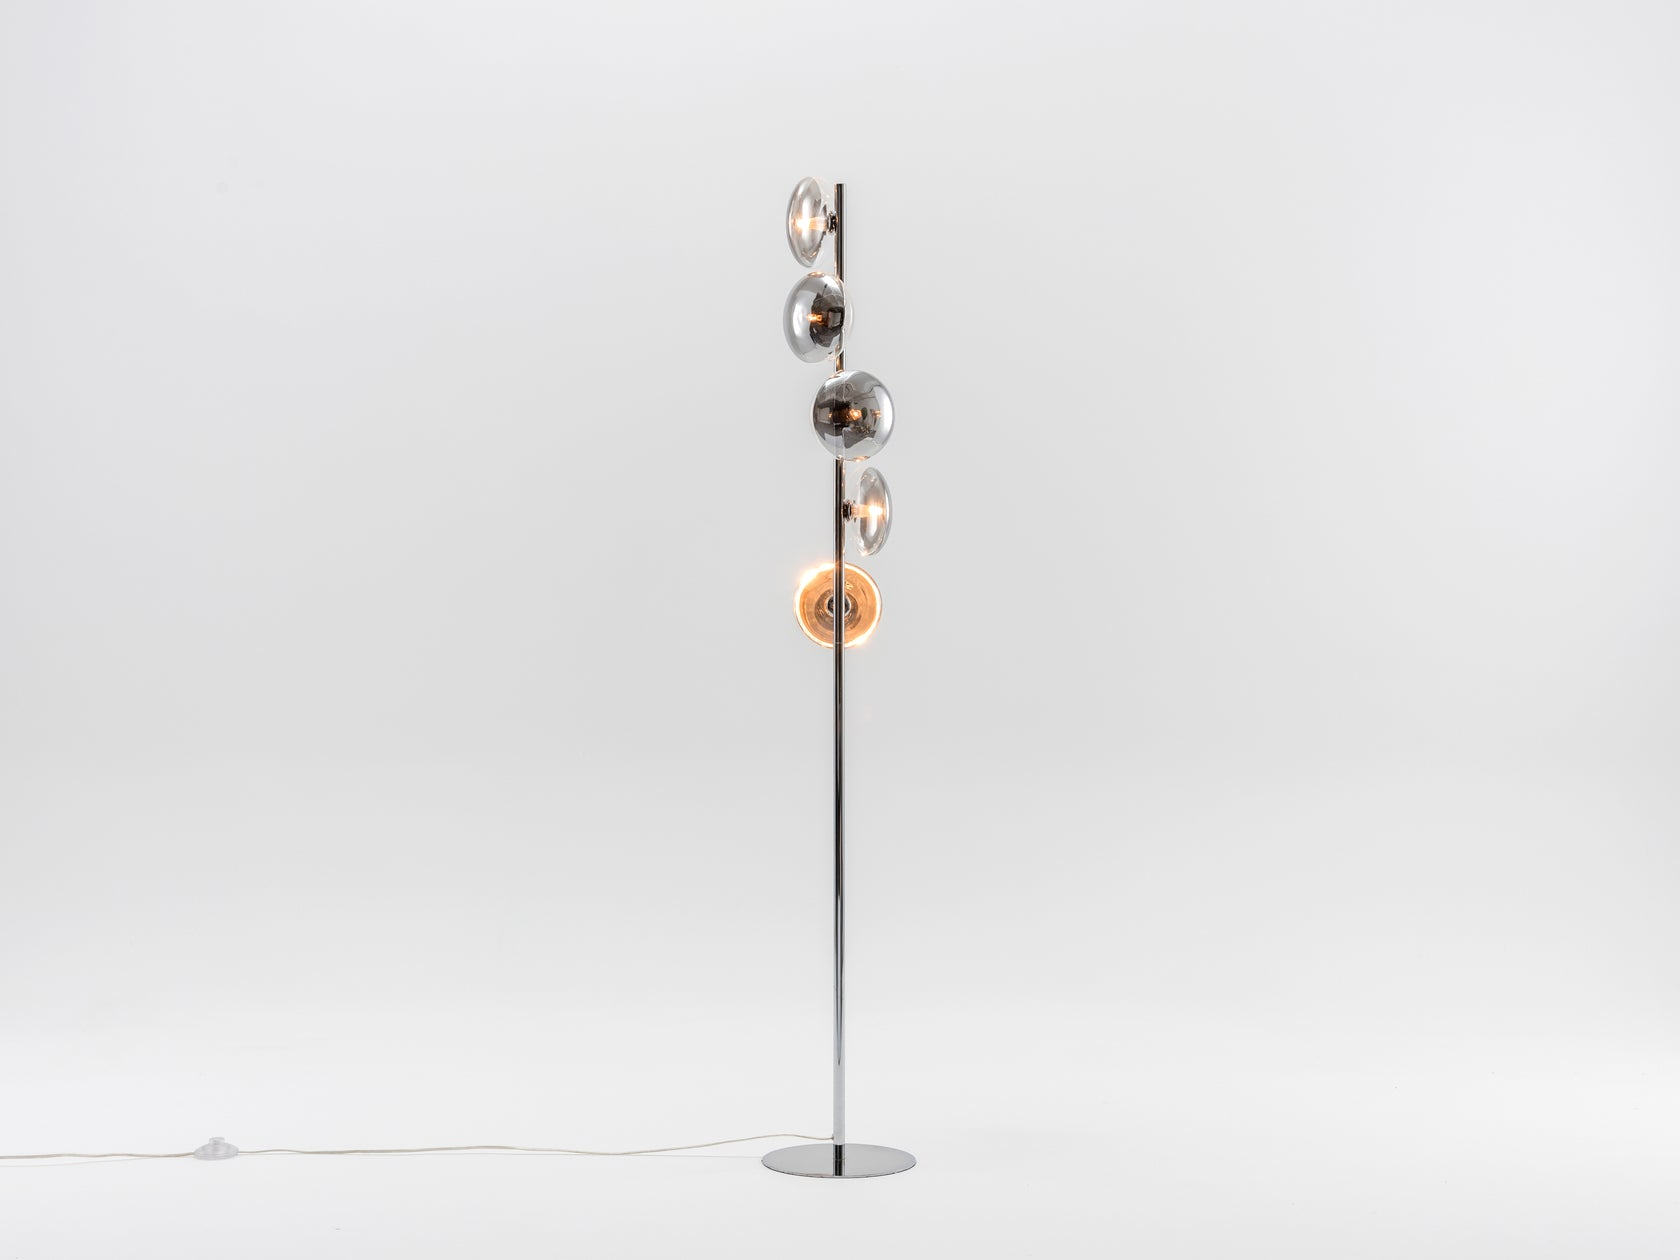 Reflective floor lamp chrome | on | houseof.com